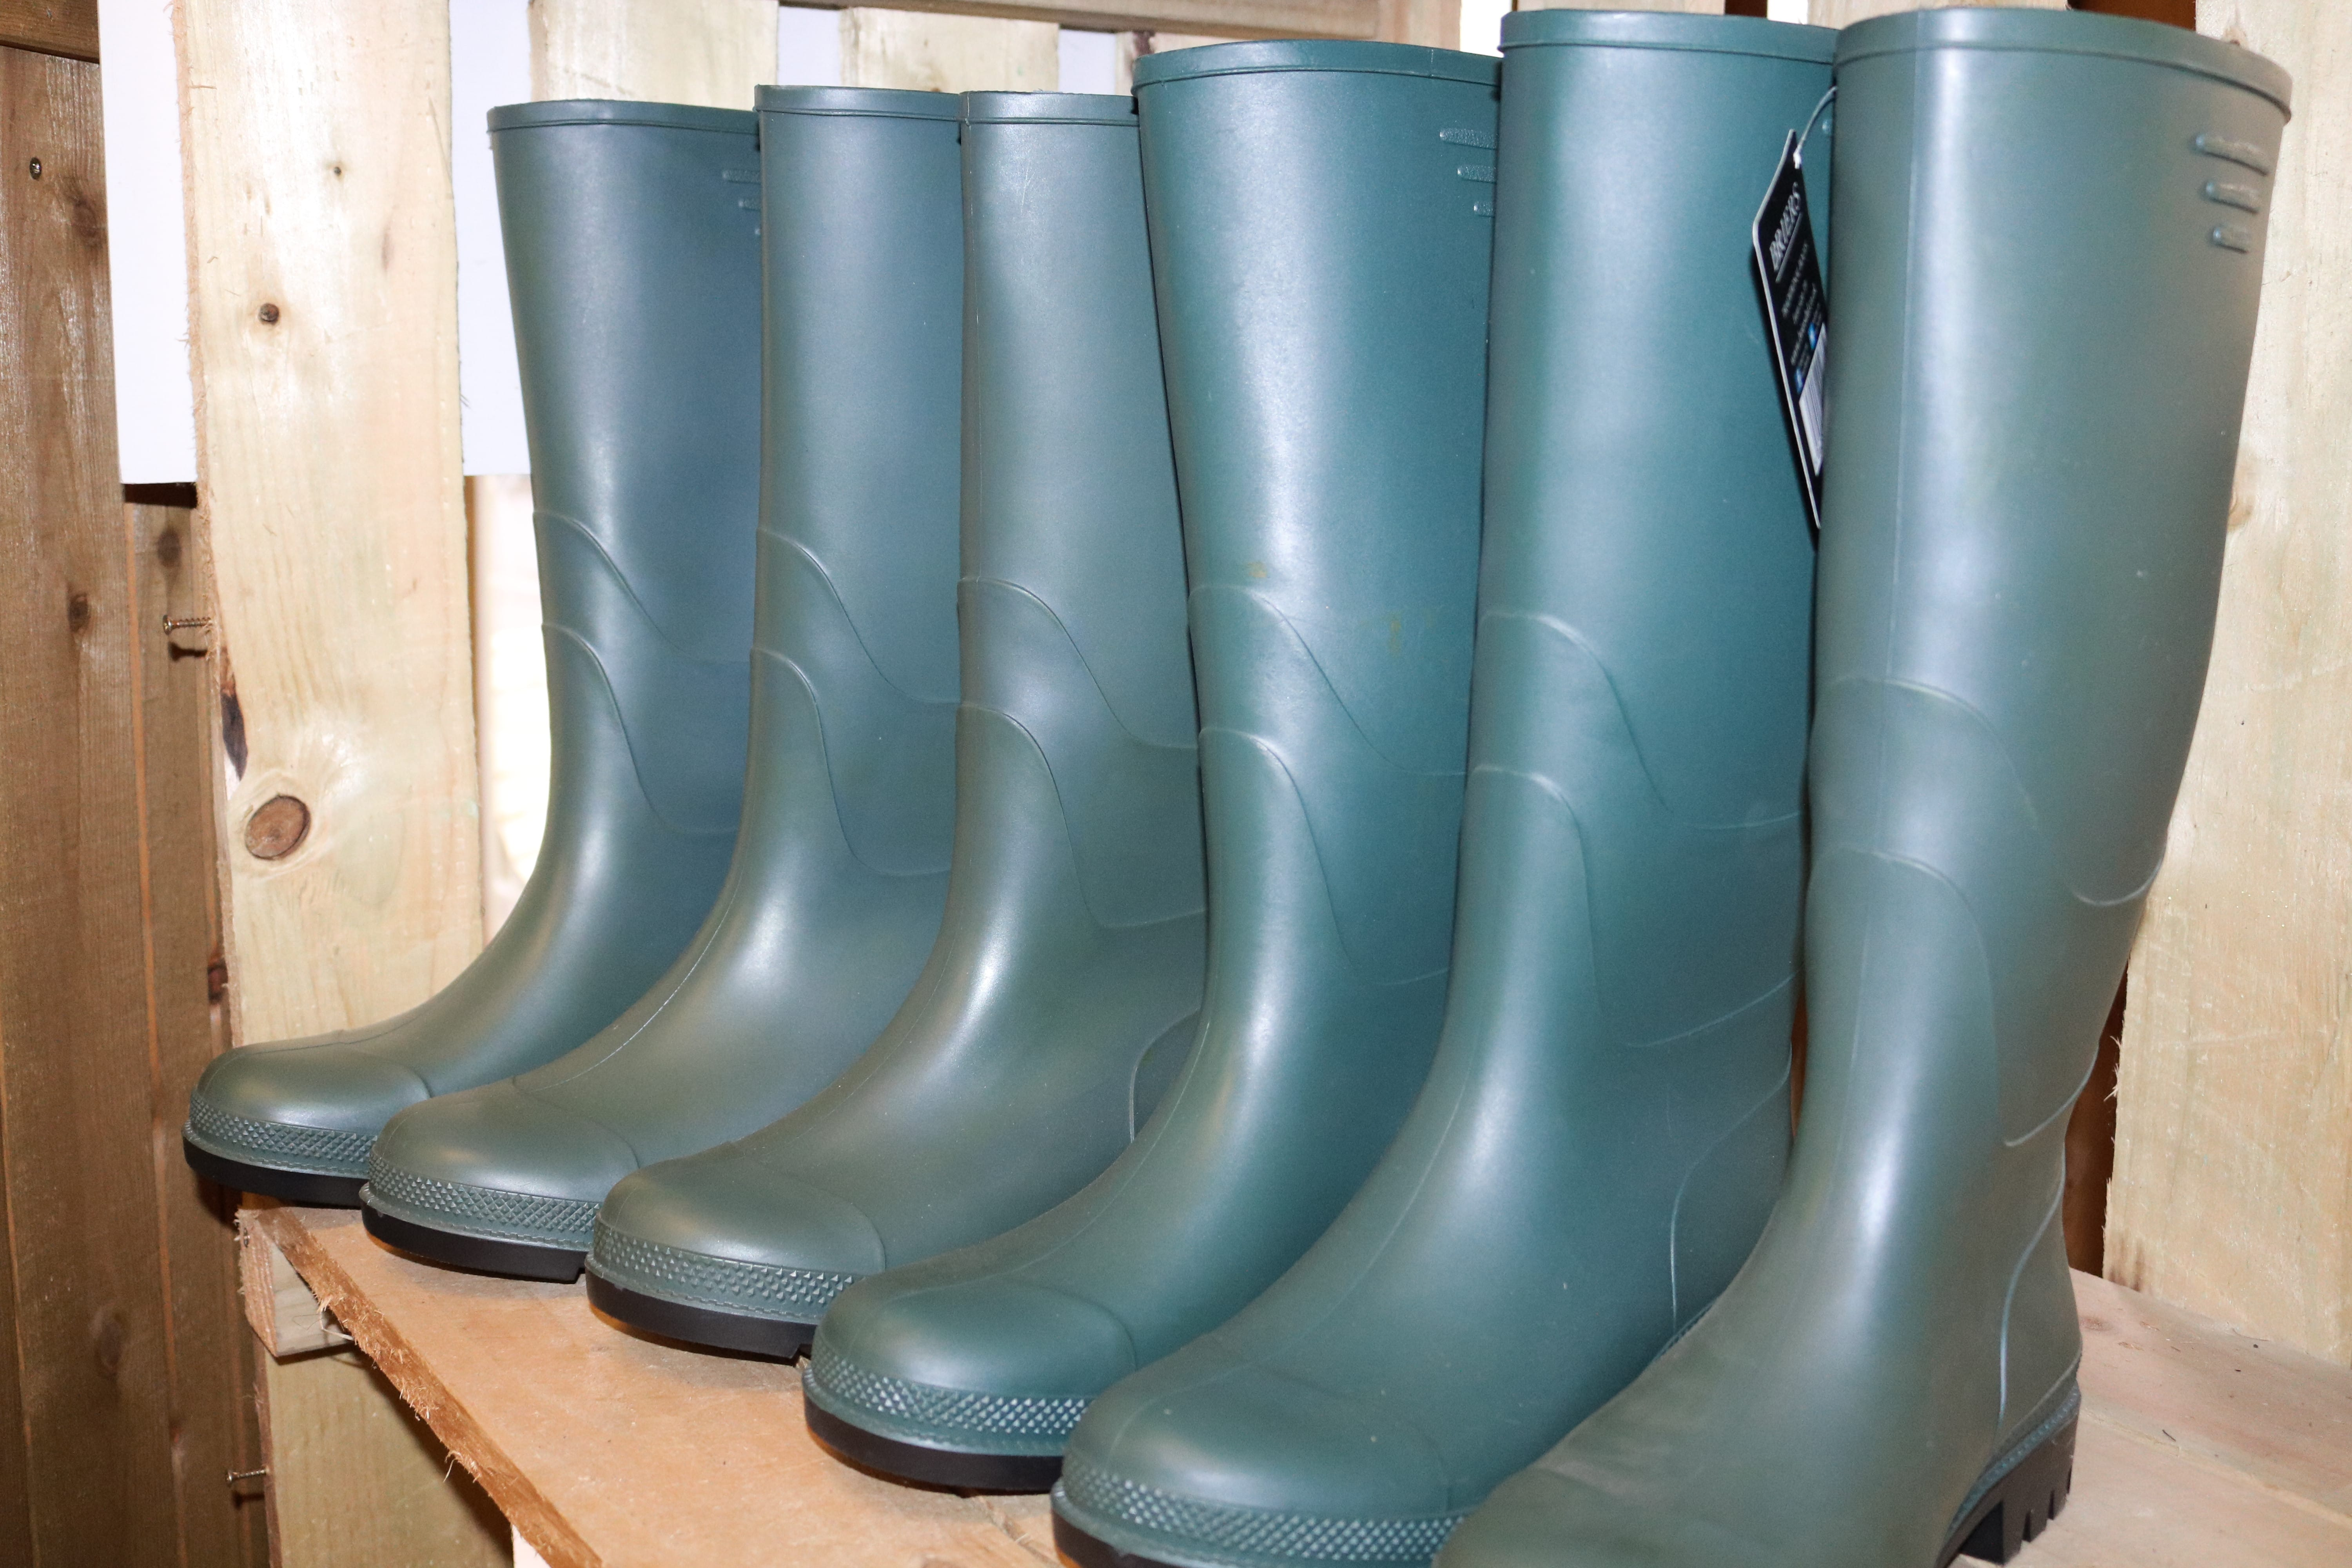 A gardener always nees a good pair of wellies!